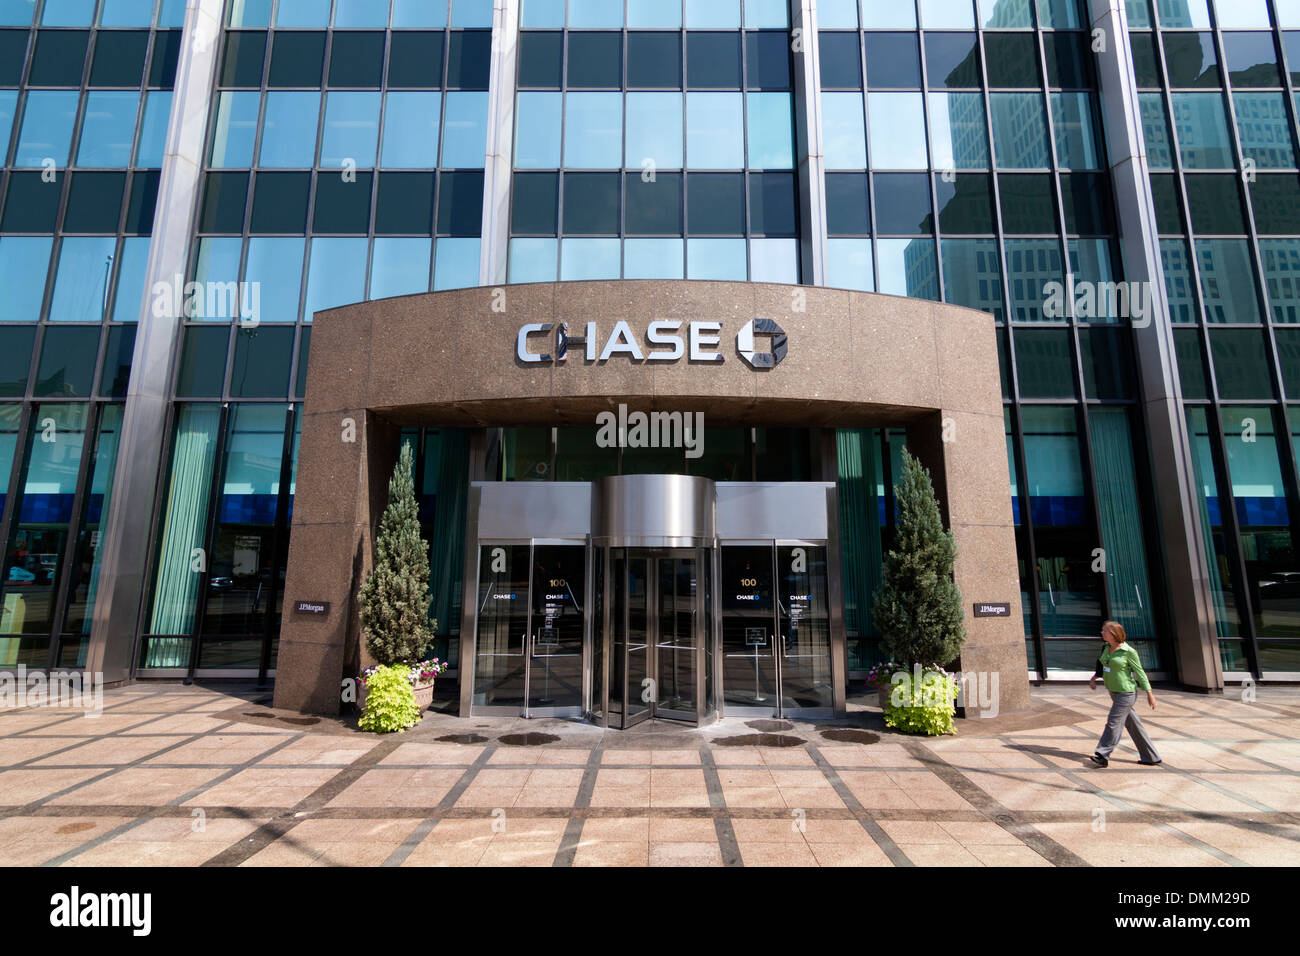 Chase bank in Columbus, Ohio, USA Stock Photo: 64365097 - Alamy